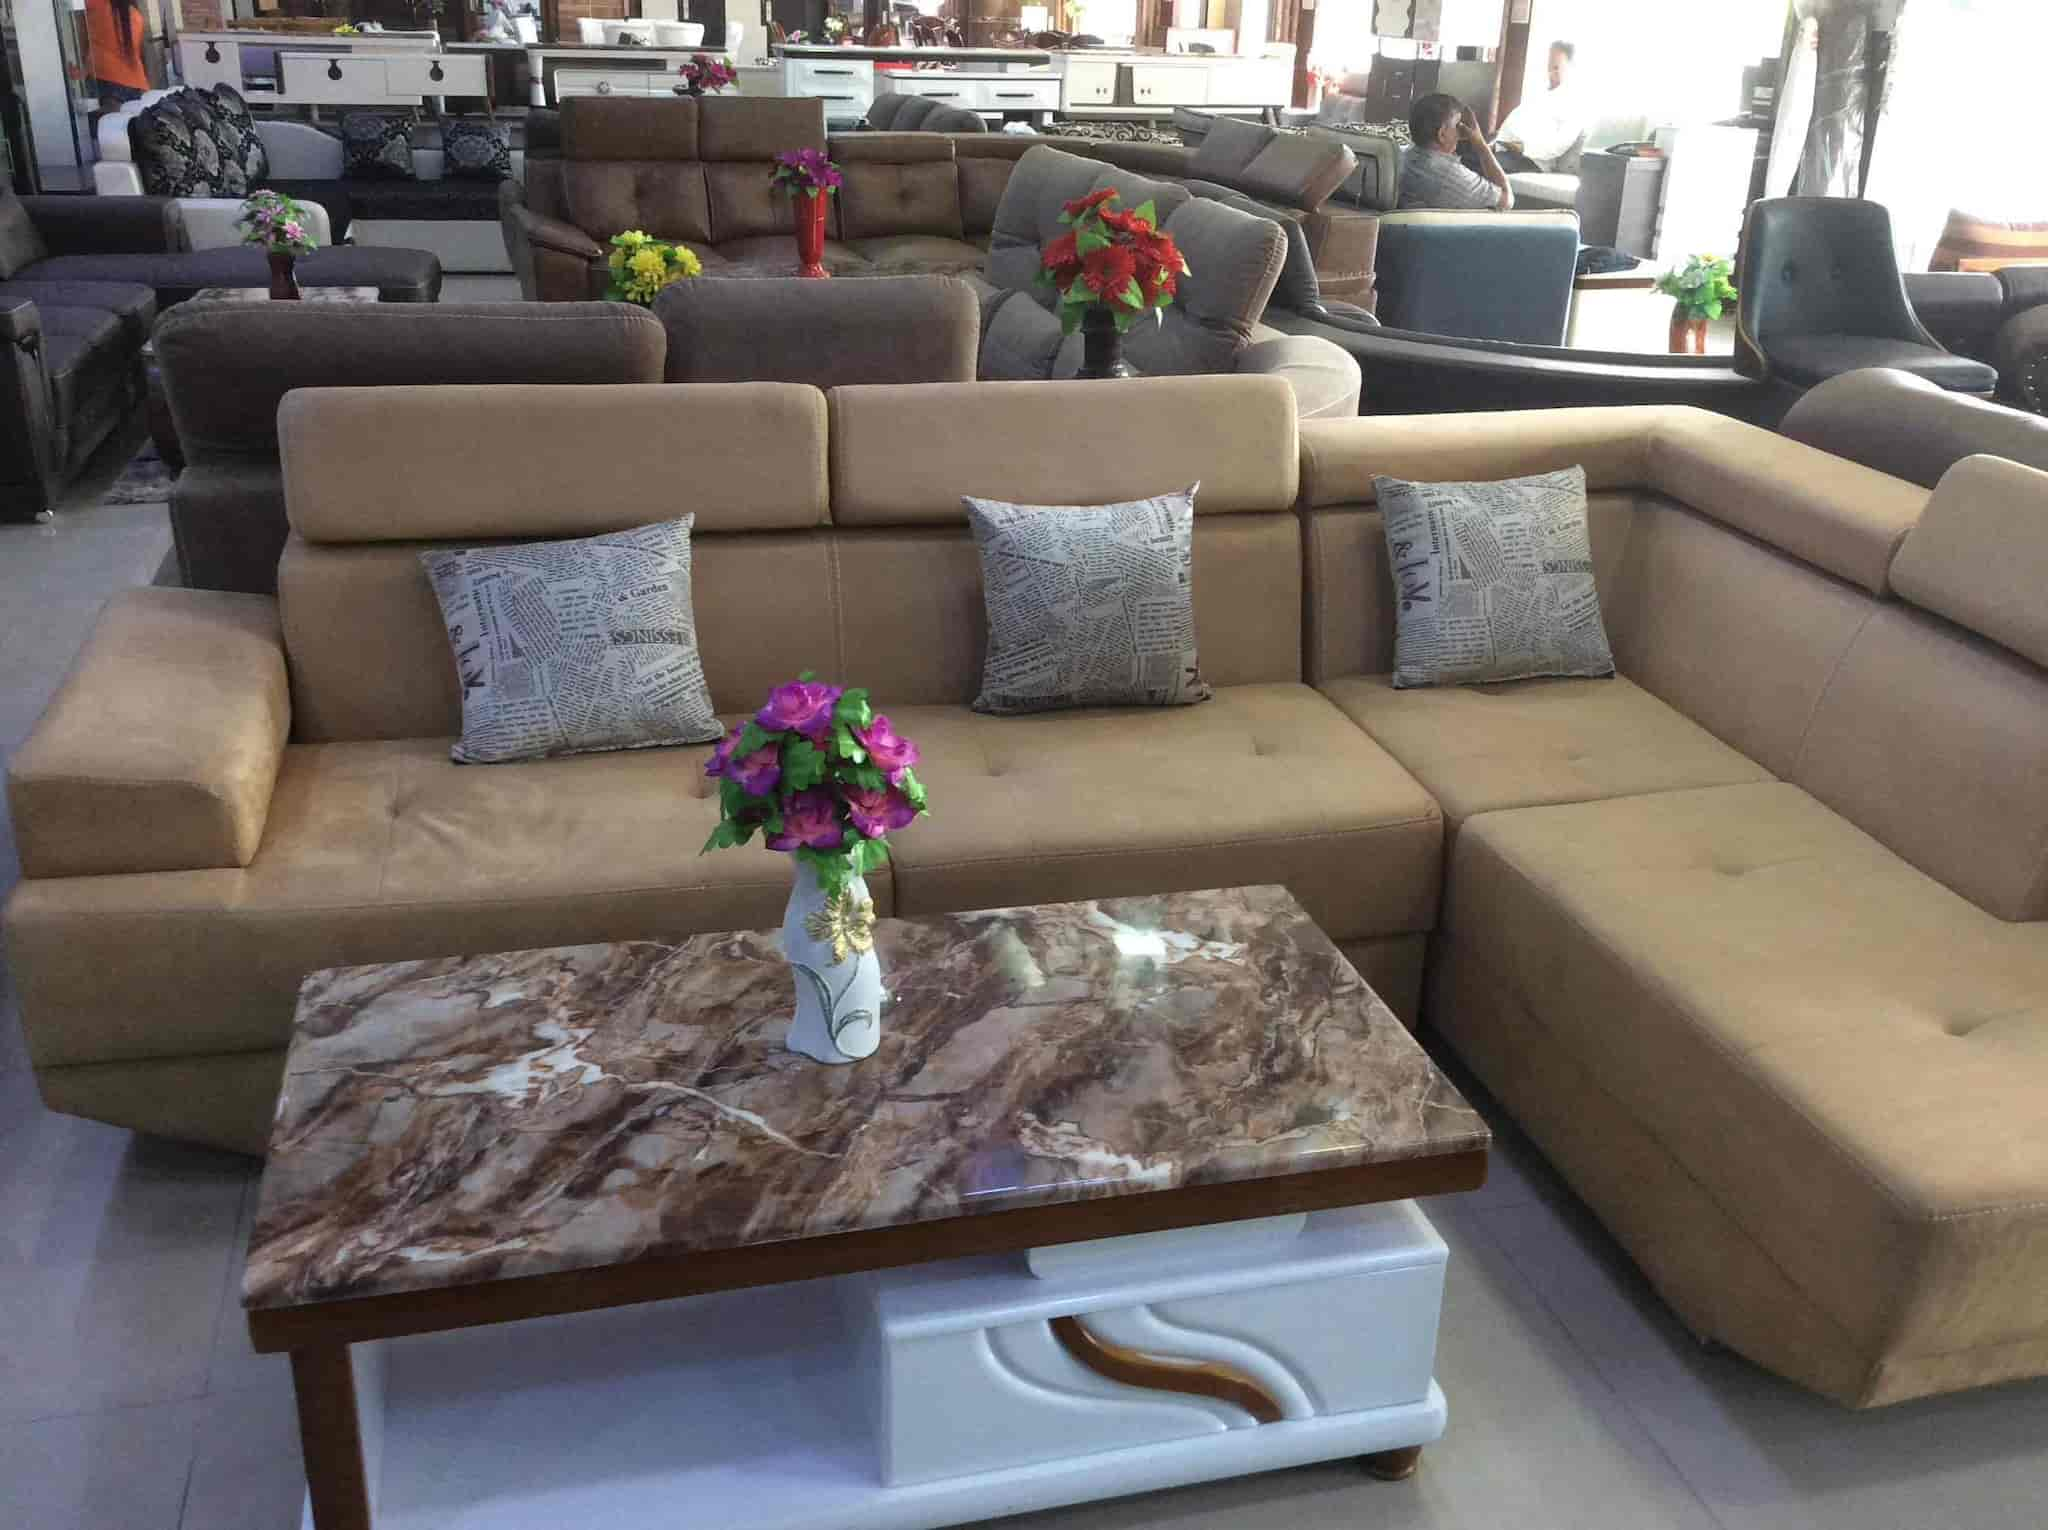 the one at plaza funiture their opens untitled furniture la showroom shangri stores retail single biggest first was of republic branch sqm in finding country hk sun